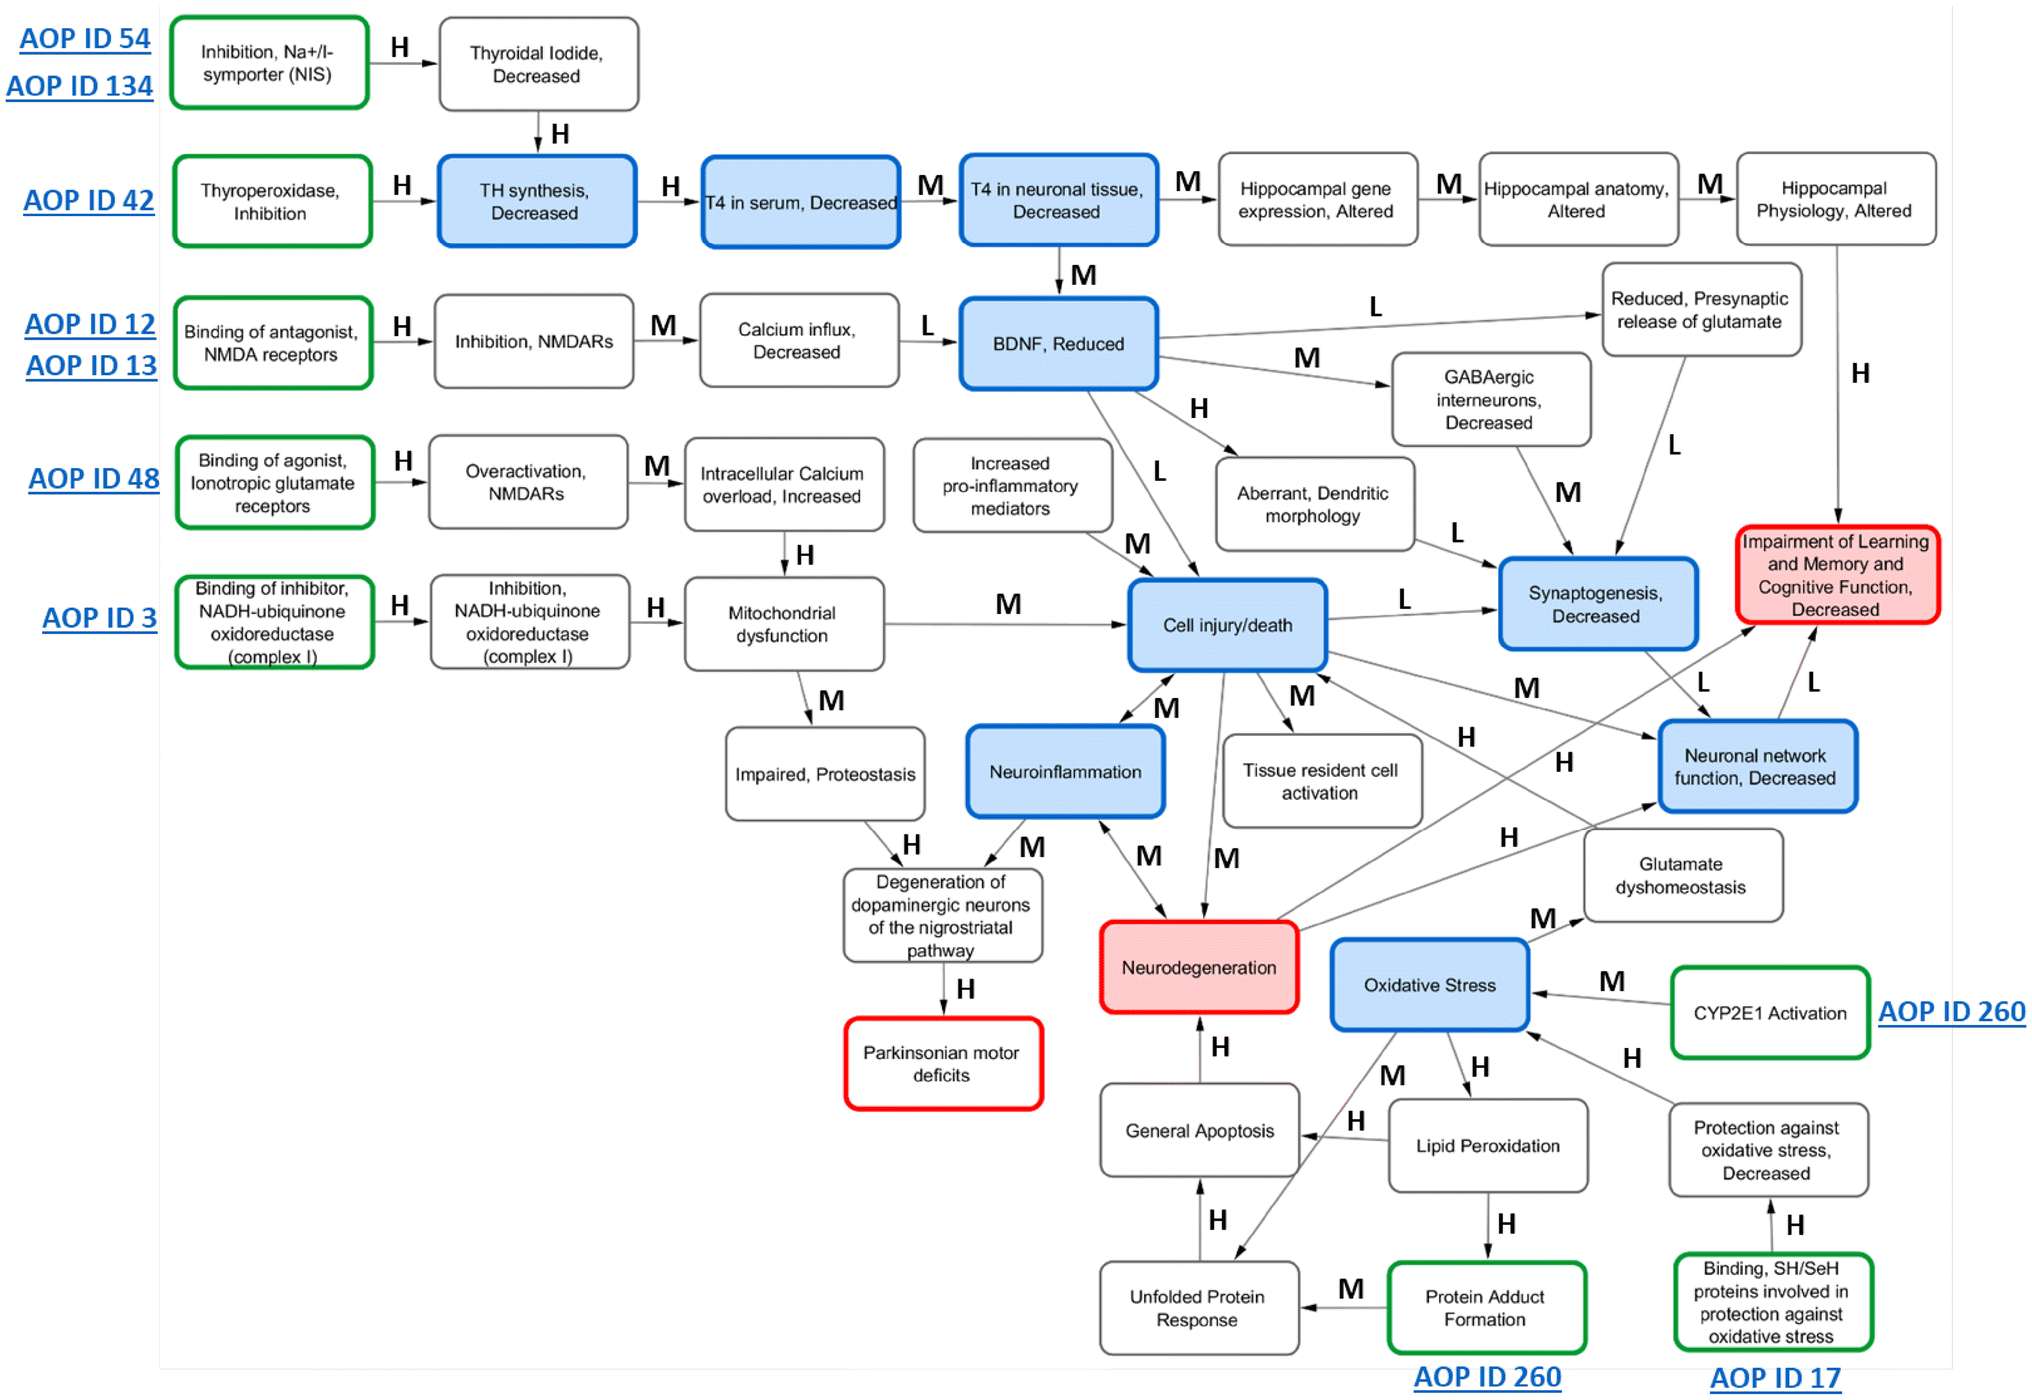 Development and analysis of an adverse outcome pathway